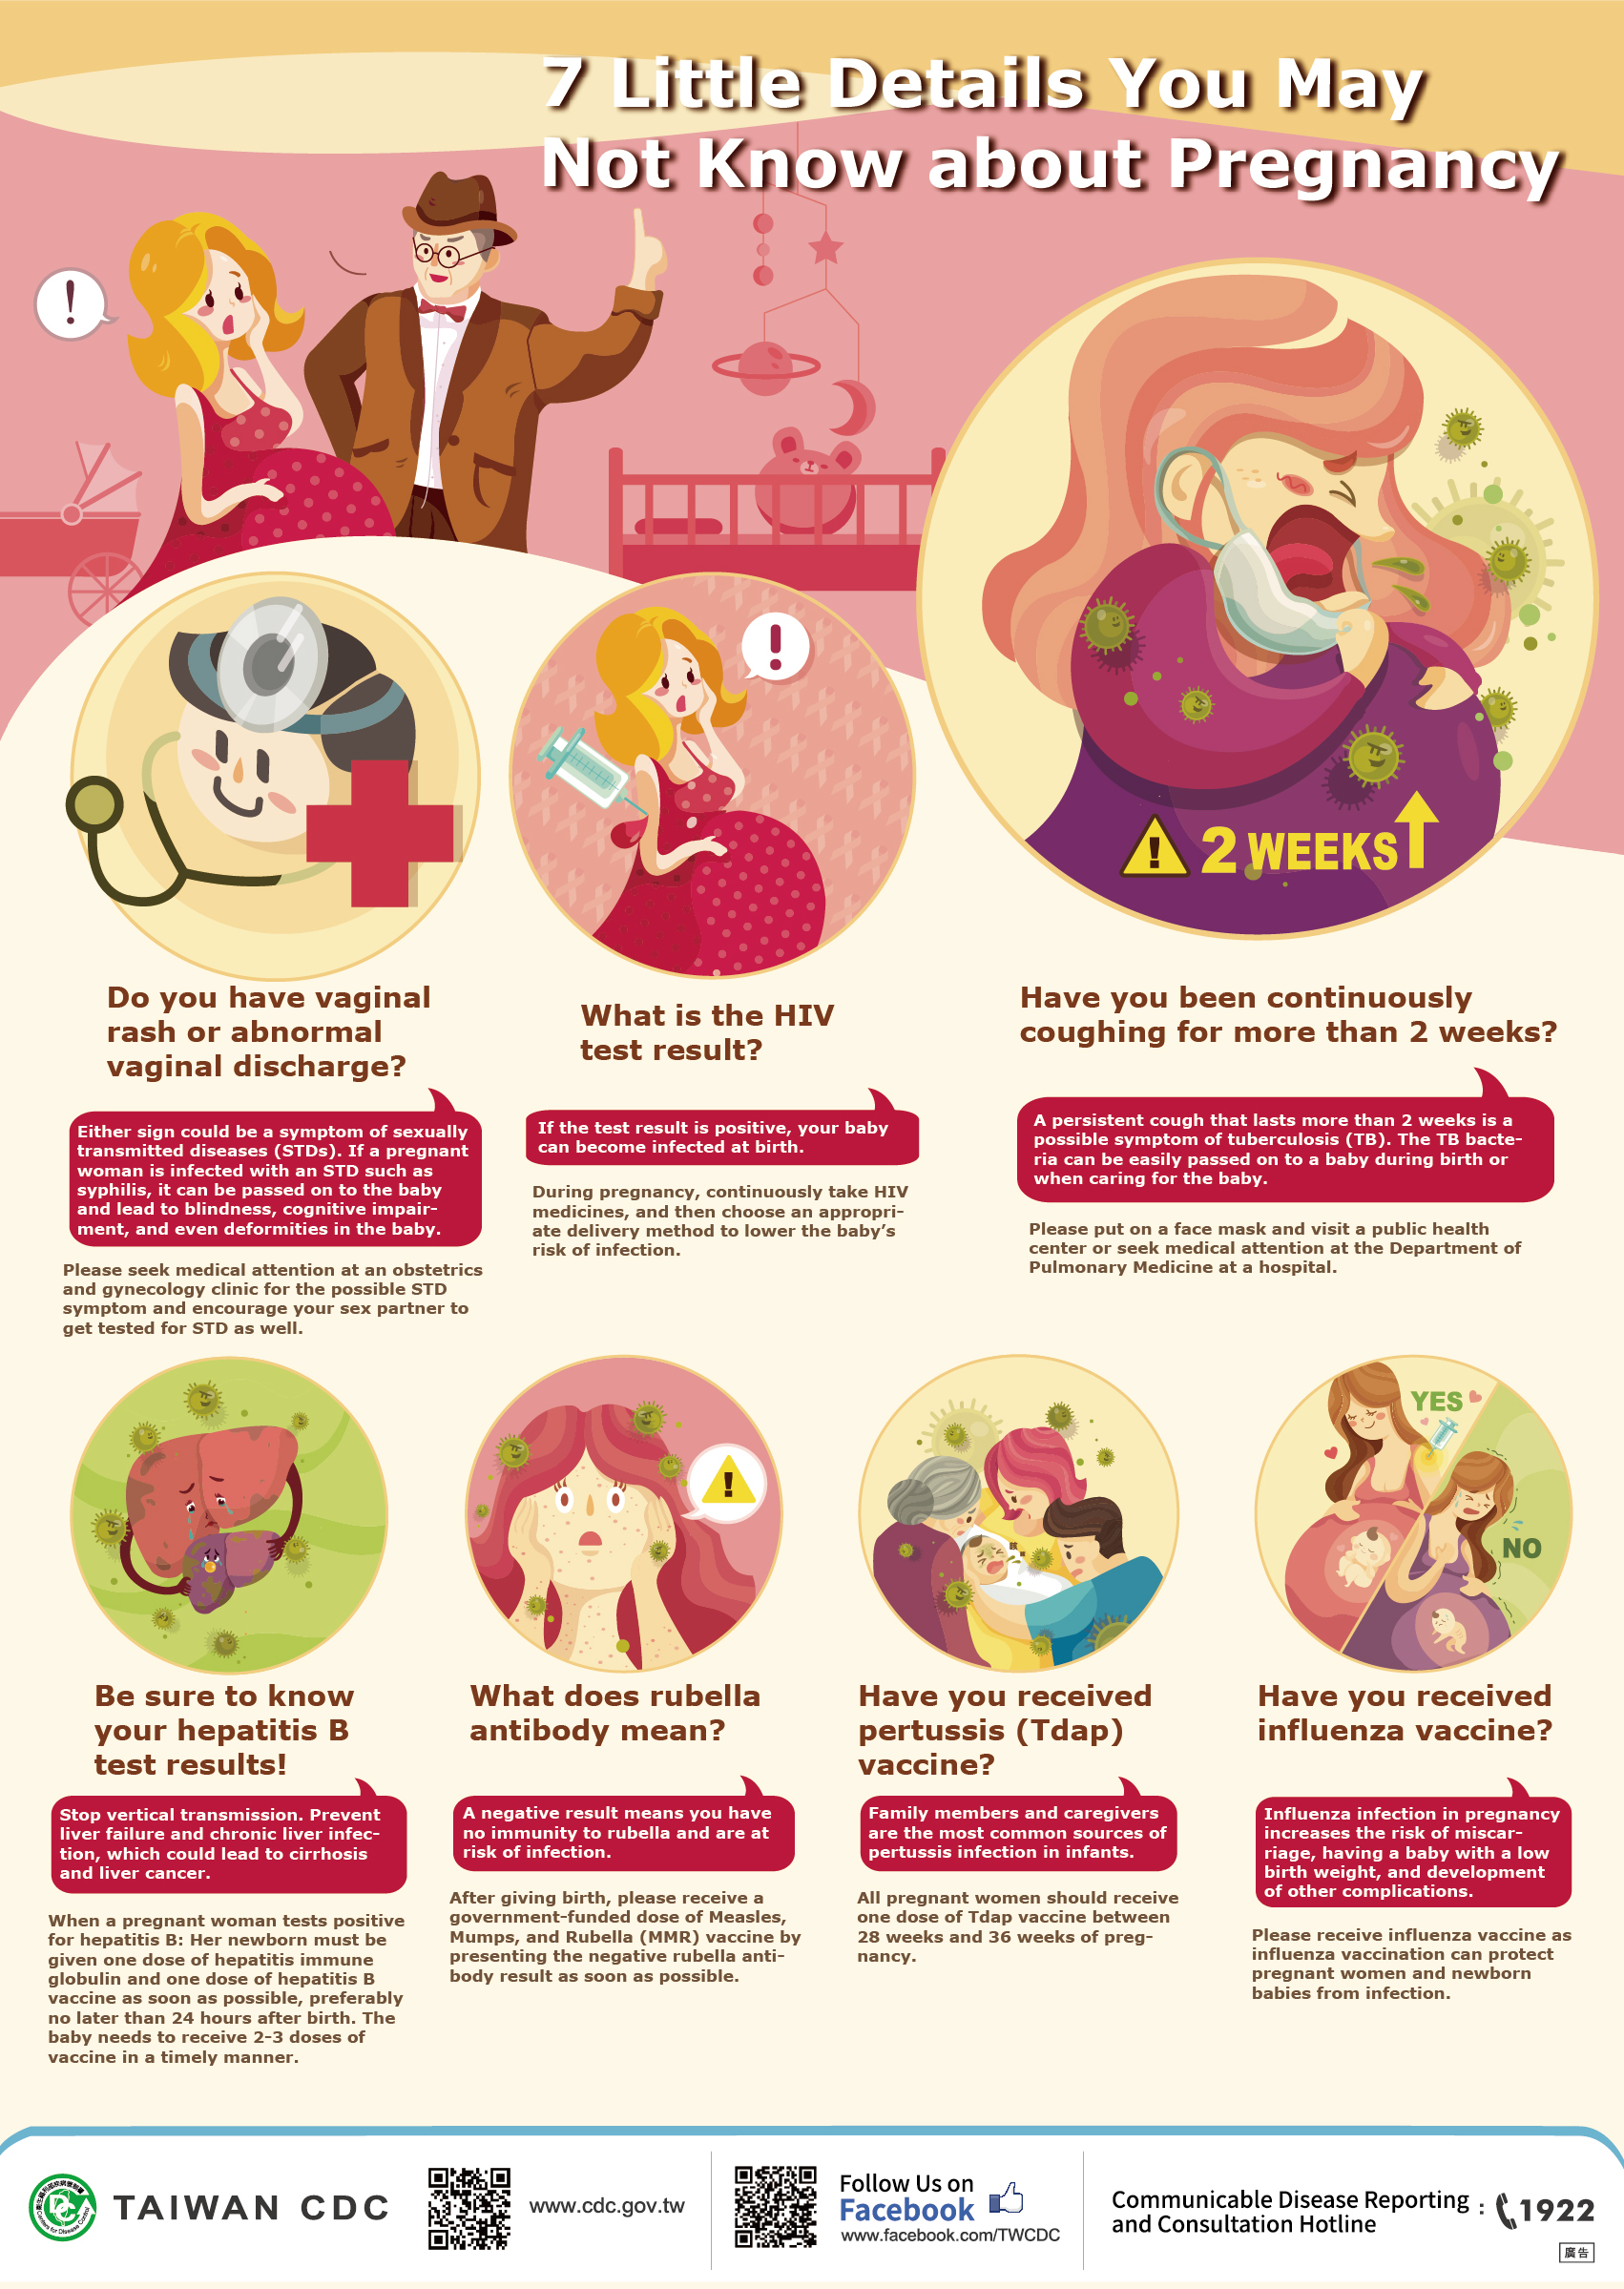 7 Things you may not know about pregnancy.jpg